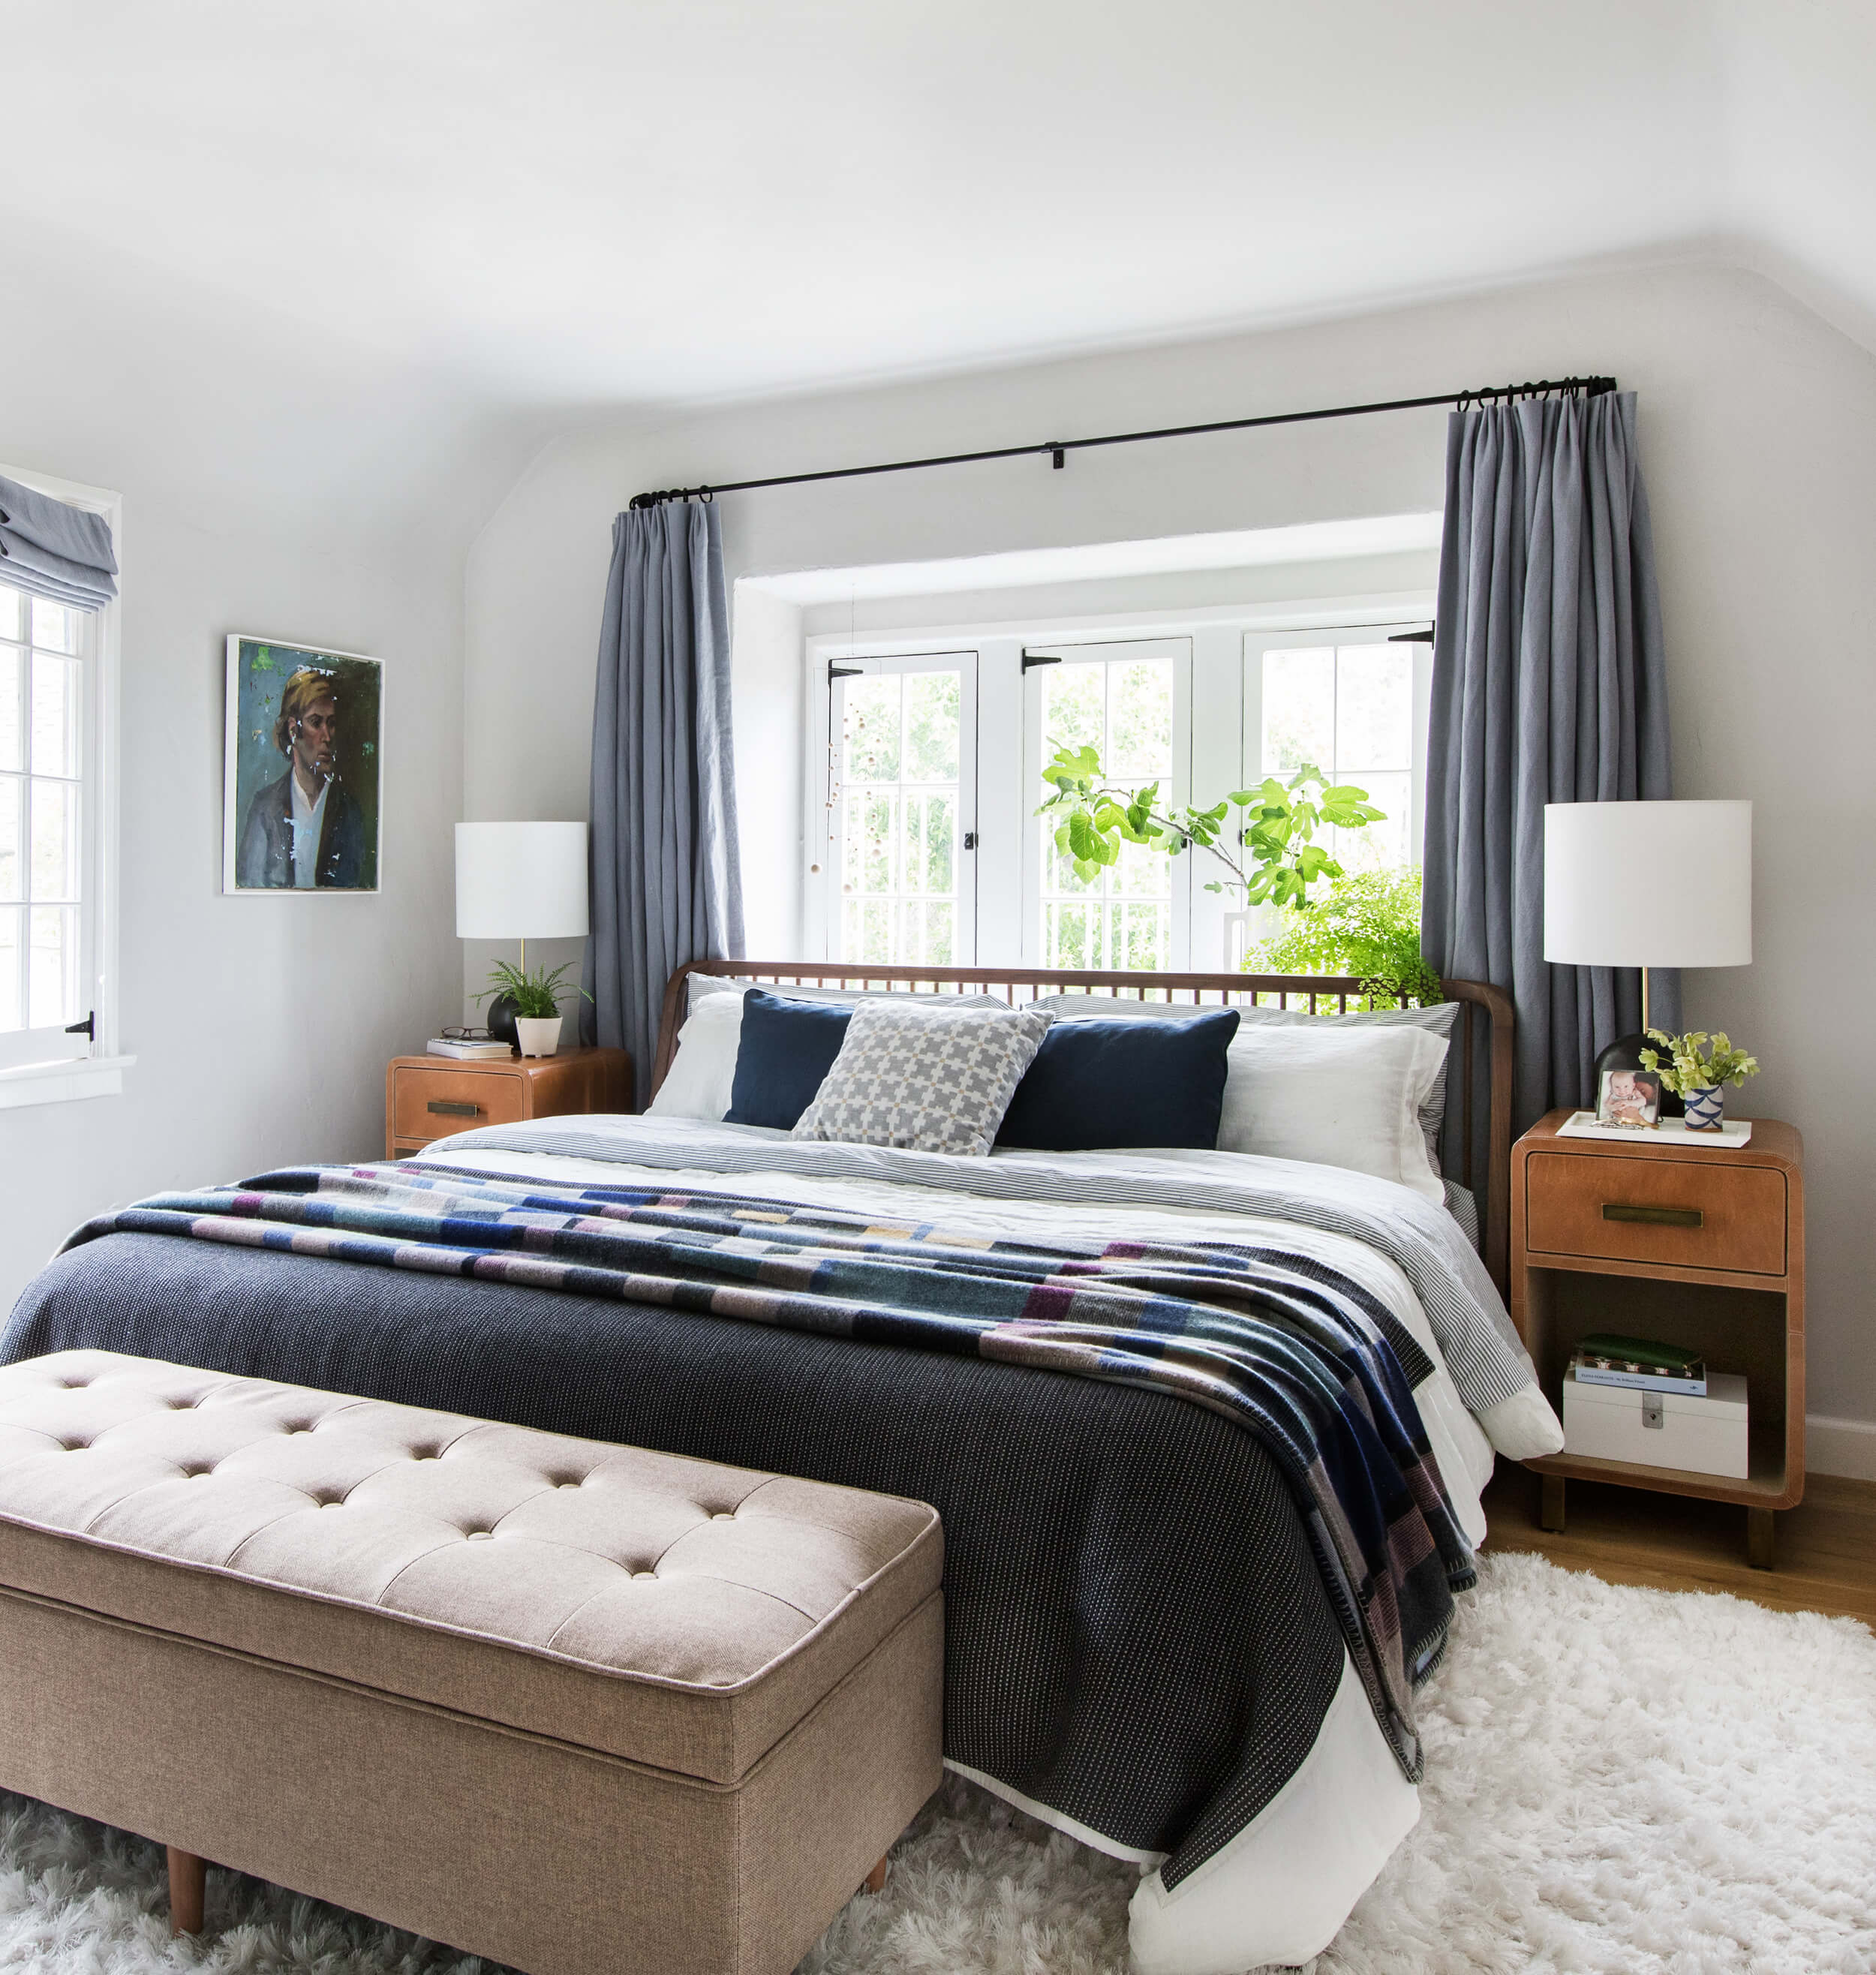 Our Master Bedroom Reveal Get The Look Emily Henderson throughout 12 Some of the Coolest Designs of How to Build Modern Bedroom Bedding